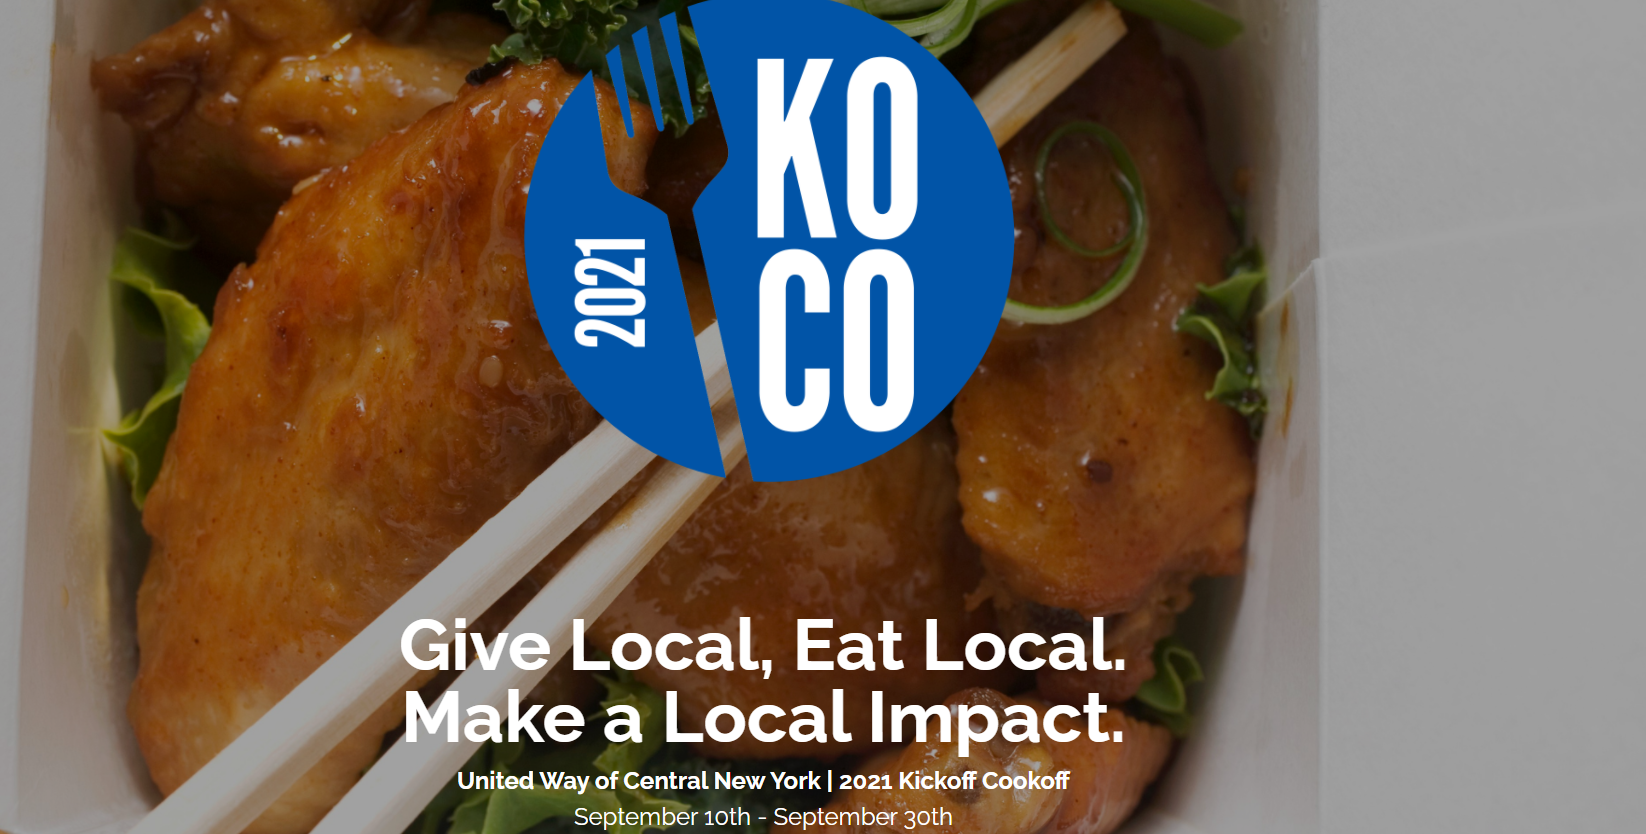 United Way of CNY 2021 Kickoff Cookoff | September 10th-30th